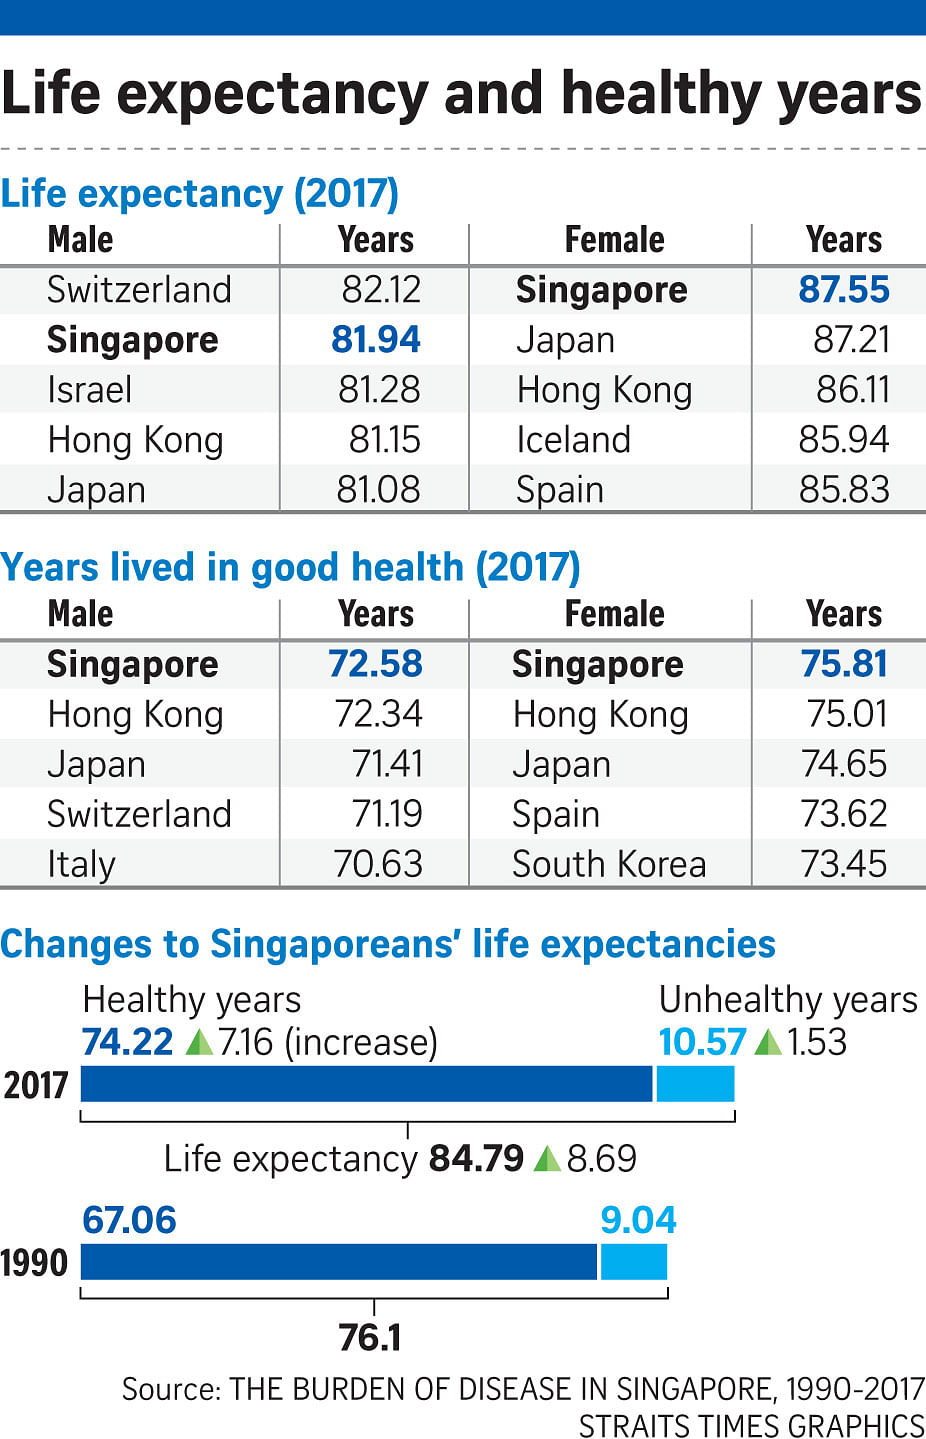 Singaporeans have worlds longest life expectancy at 84.8 years